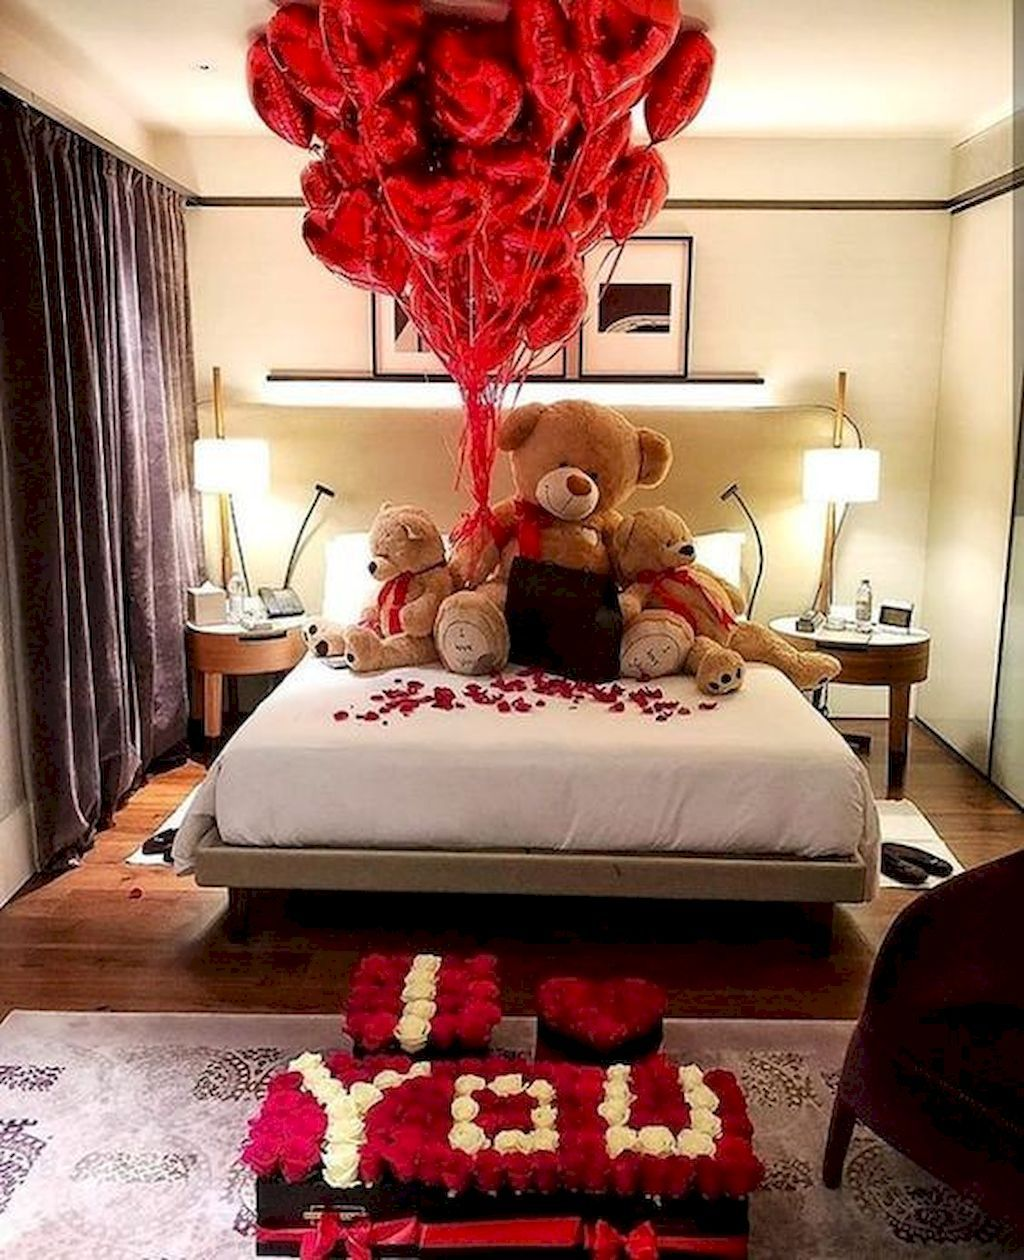 45 romantic bedroom decorations ideas for valentines day